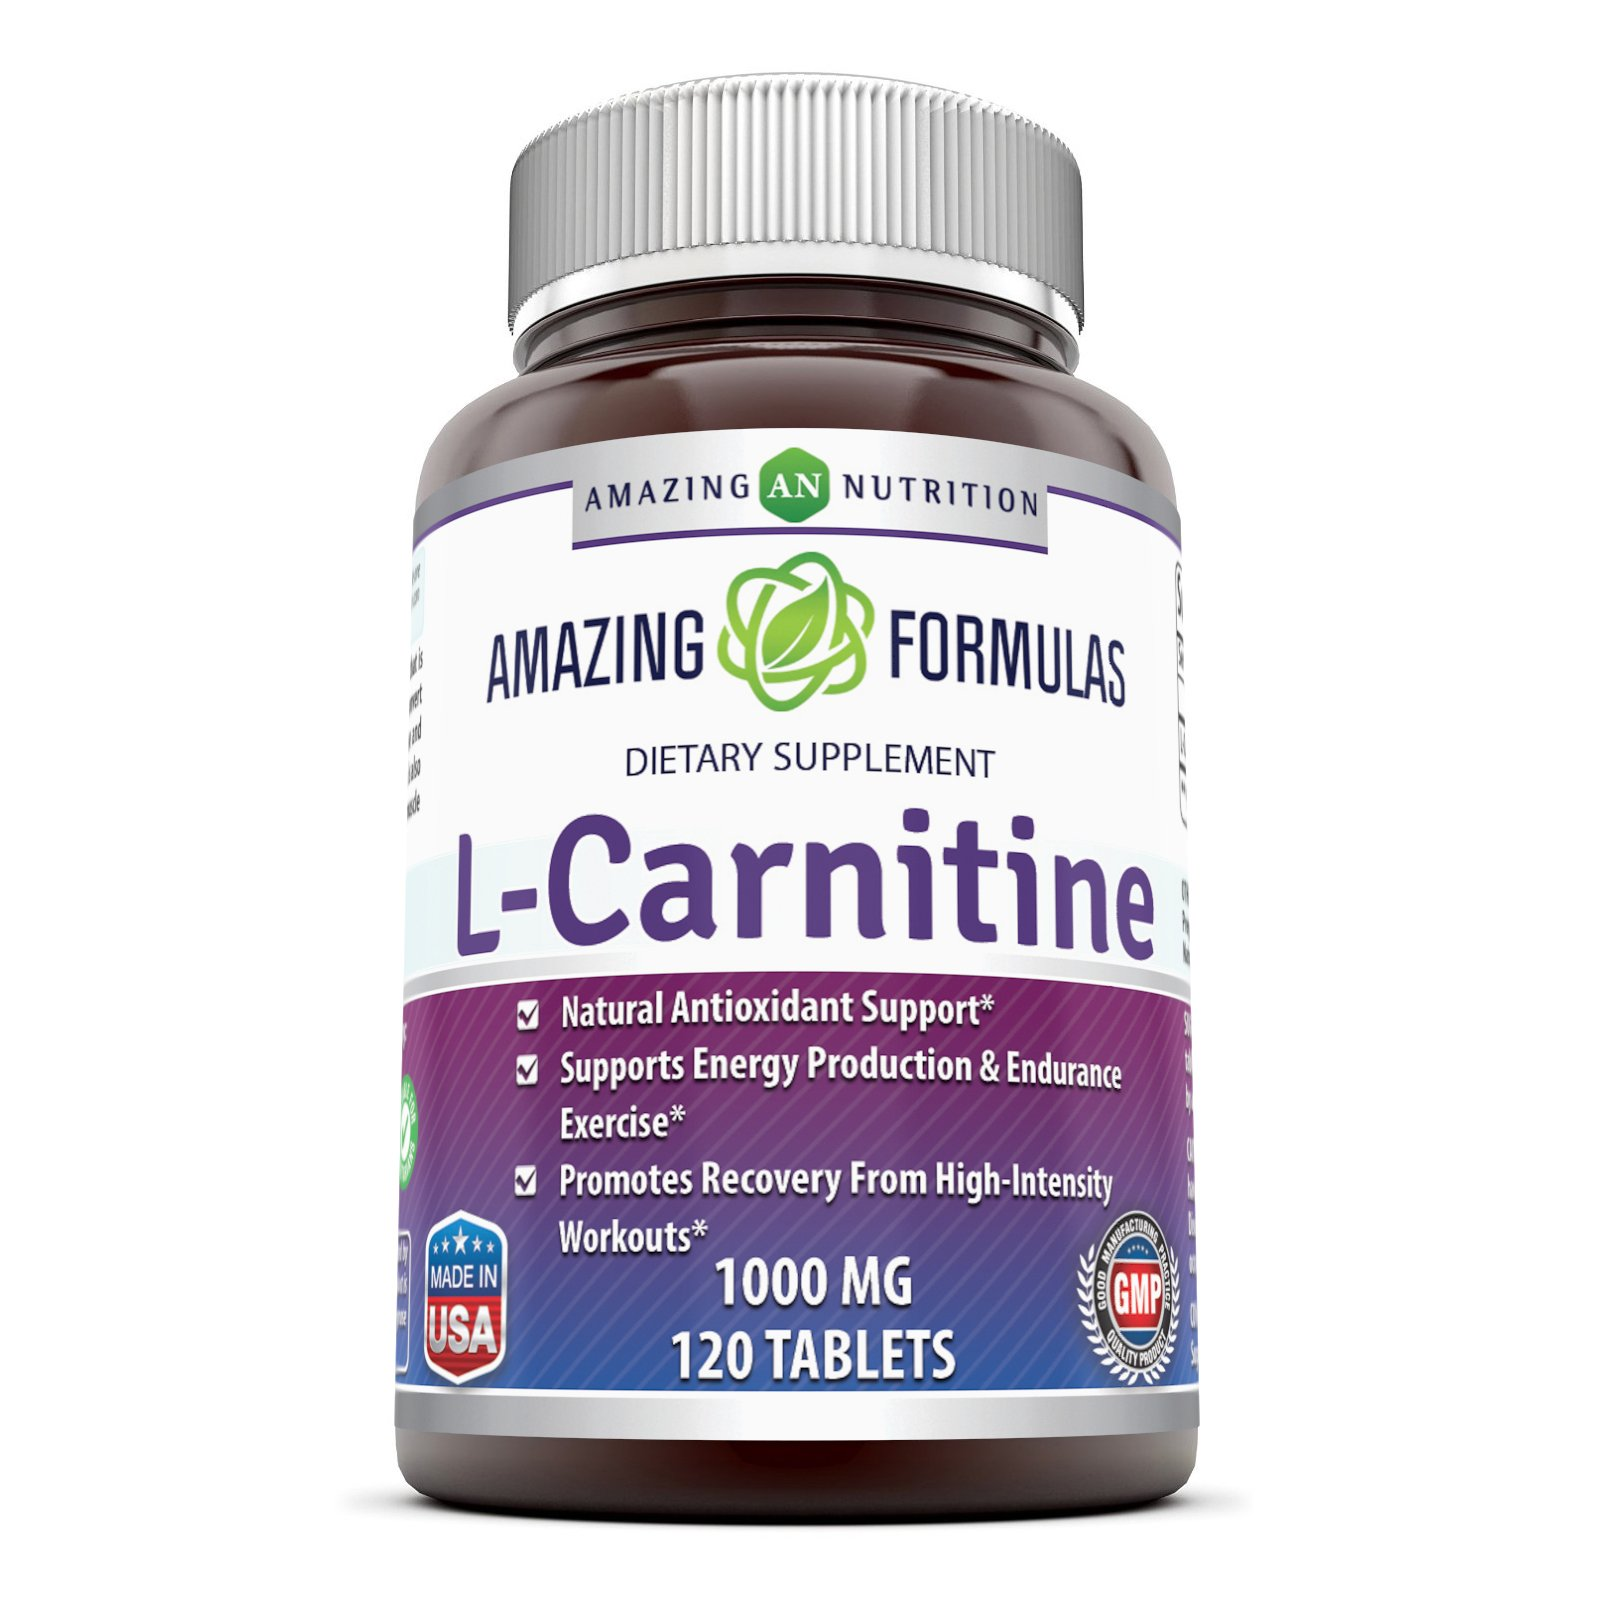 Amazing Formulas L Carnitine Fumarate Supplement - 1000 Mg, 120 Tablets - Natural Antioxidant Support - Supports Energy Prduction & Endurance Exercise - Promotes Recovery from High Intensity Workout.